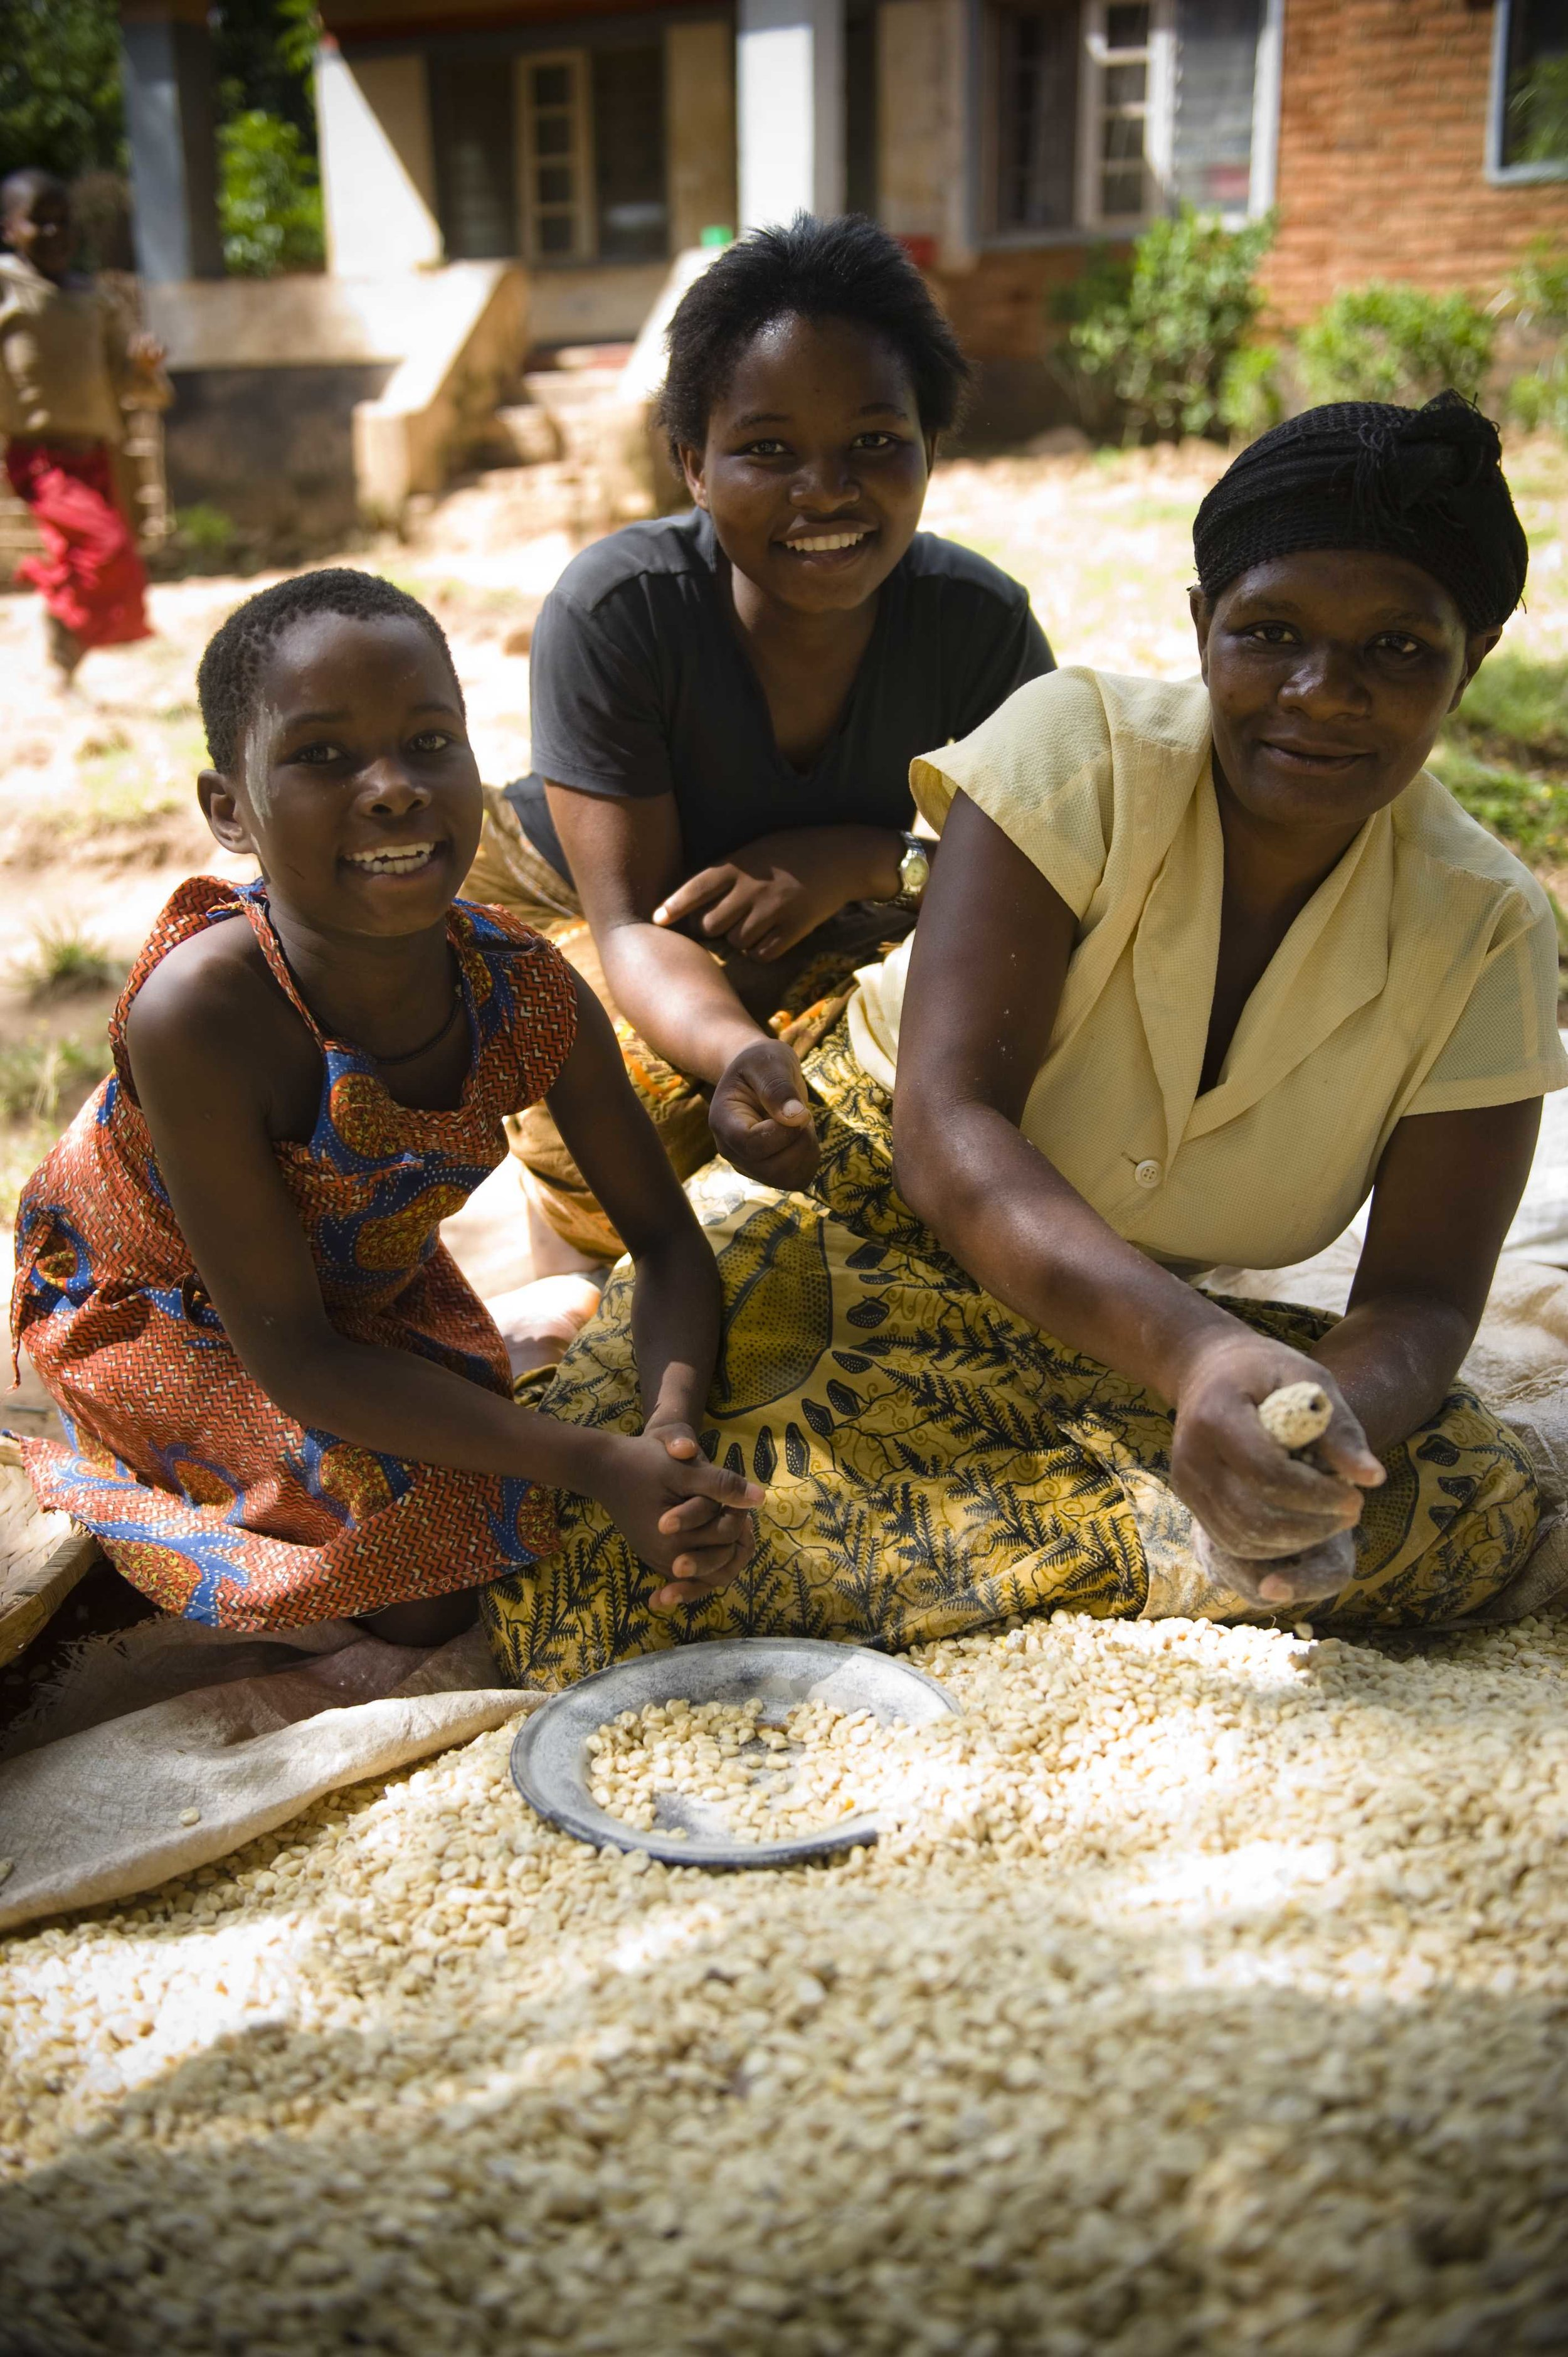 An African woman, a teenager and a child smile above a large pile of dry maize